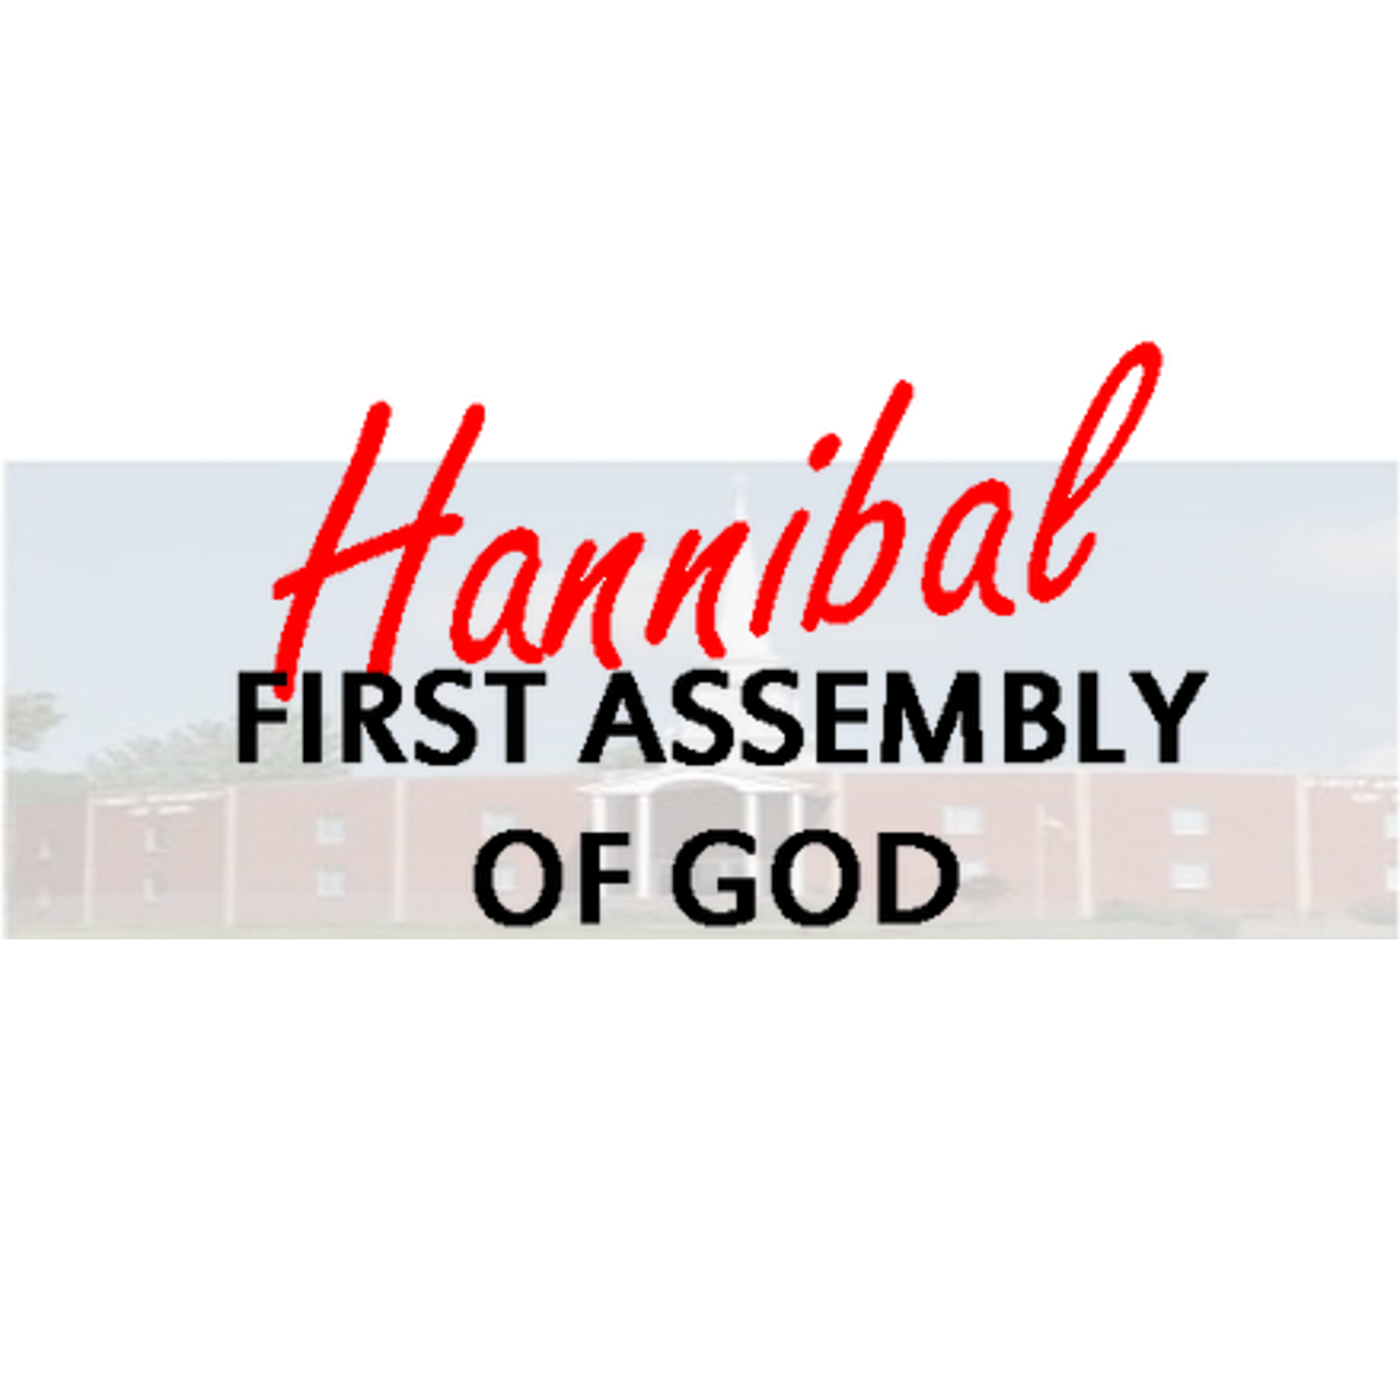 Hannibal First Assembly of God Sermons